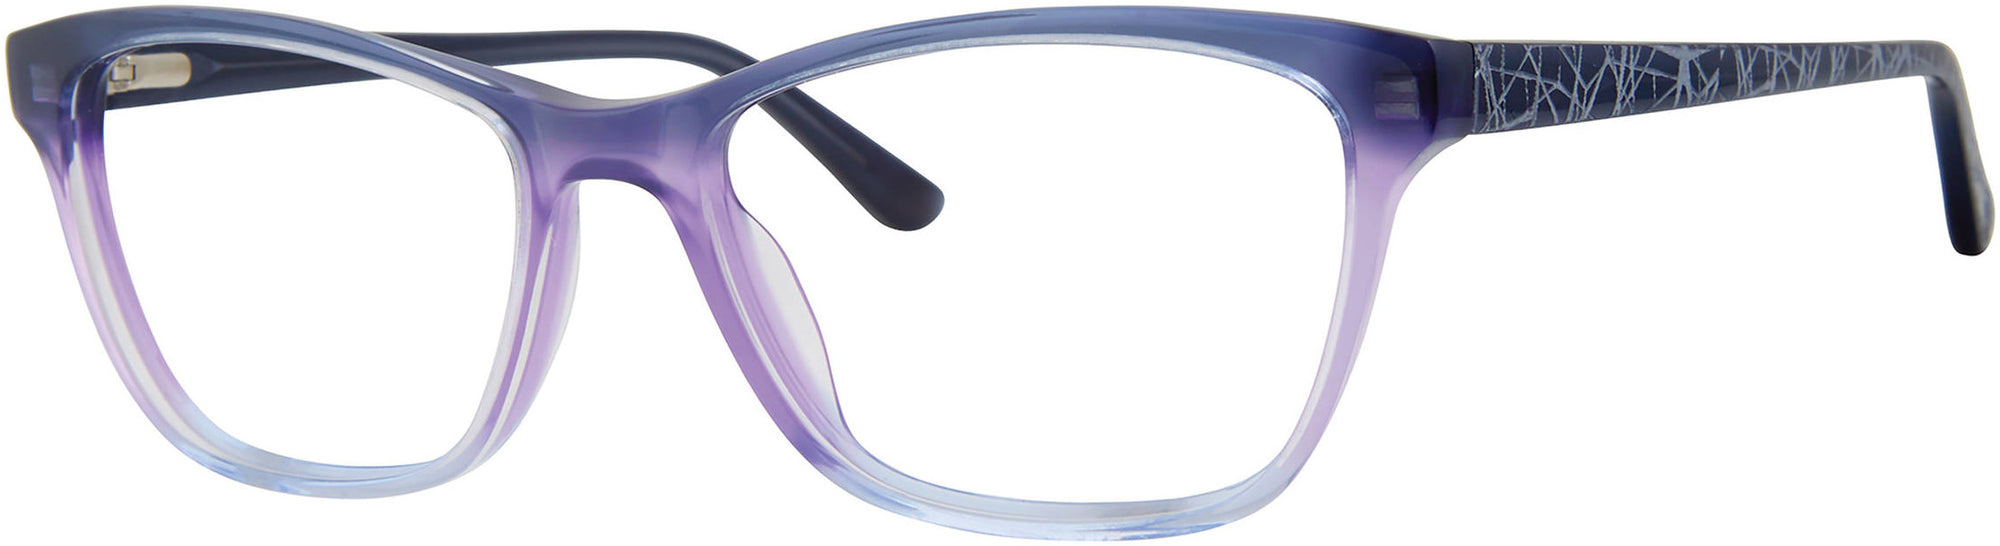 Adensco AD 225 Cat Eye/Butterfly Sunglasses 02OW-02OW  Shaded Violet (00 Demo Lens)